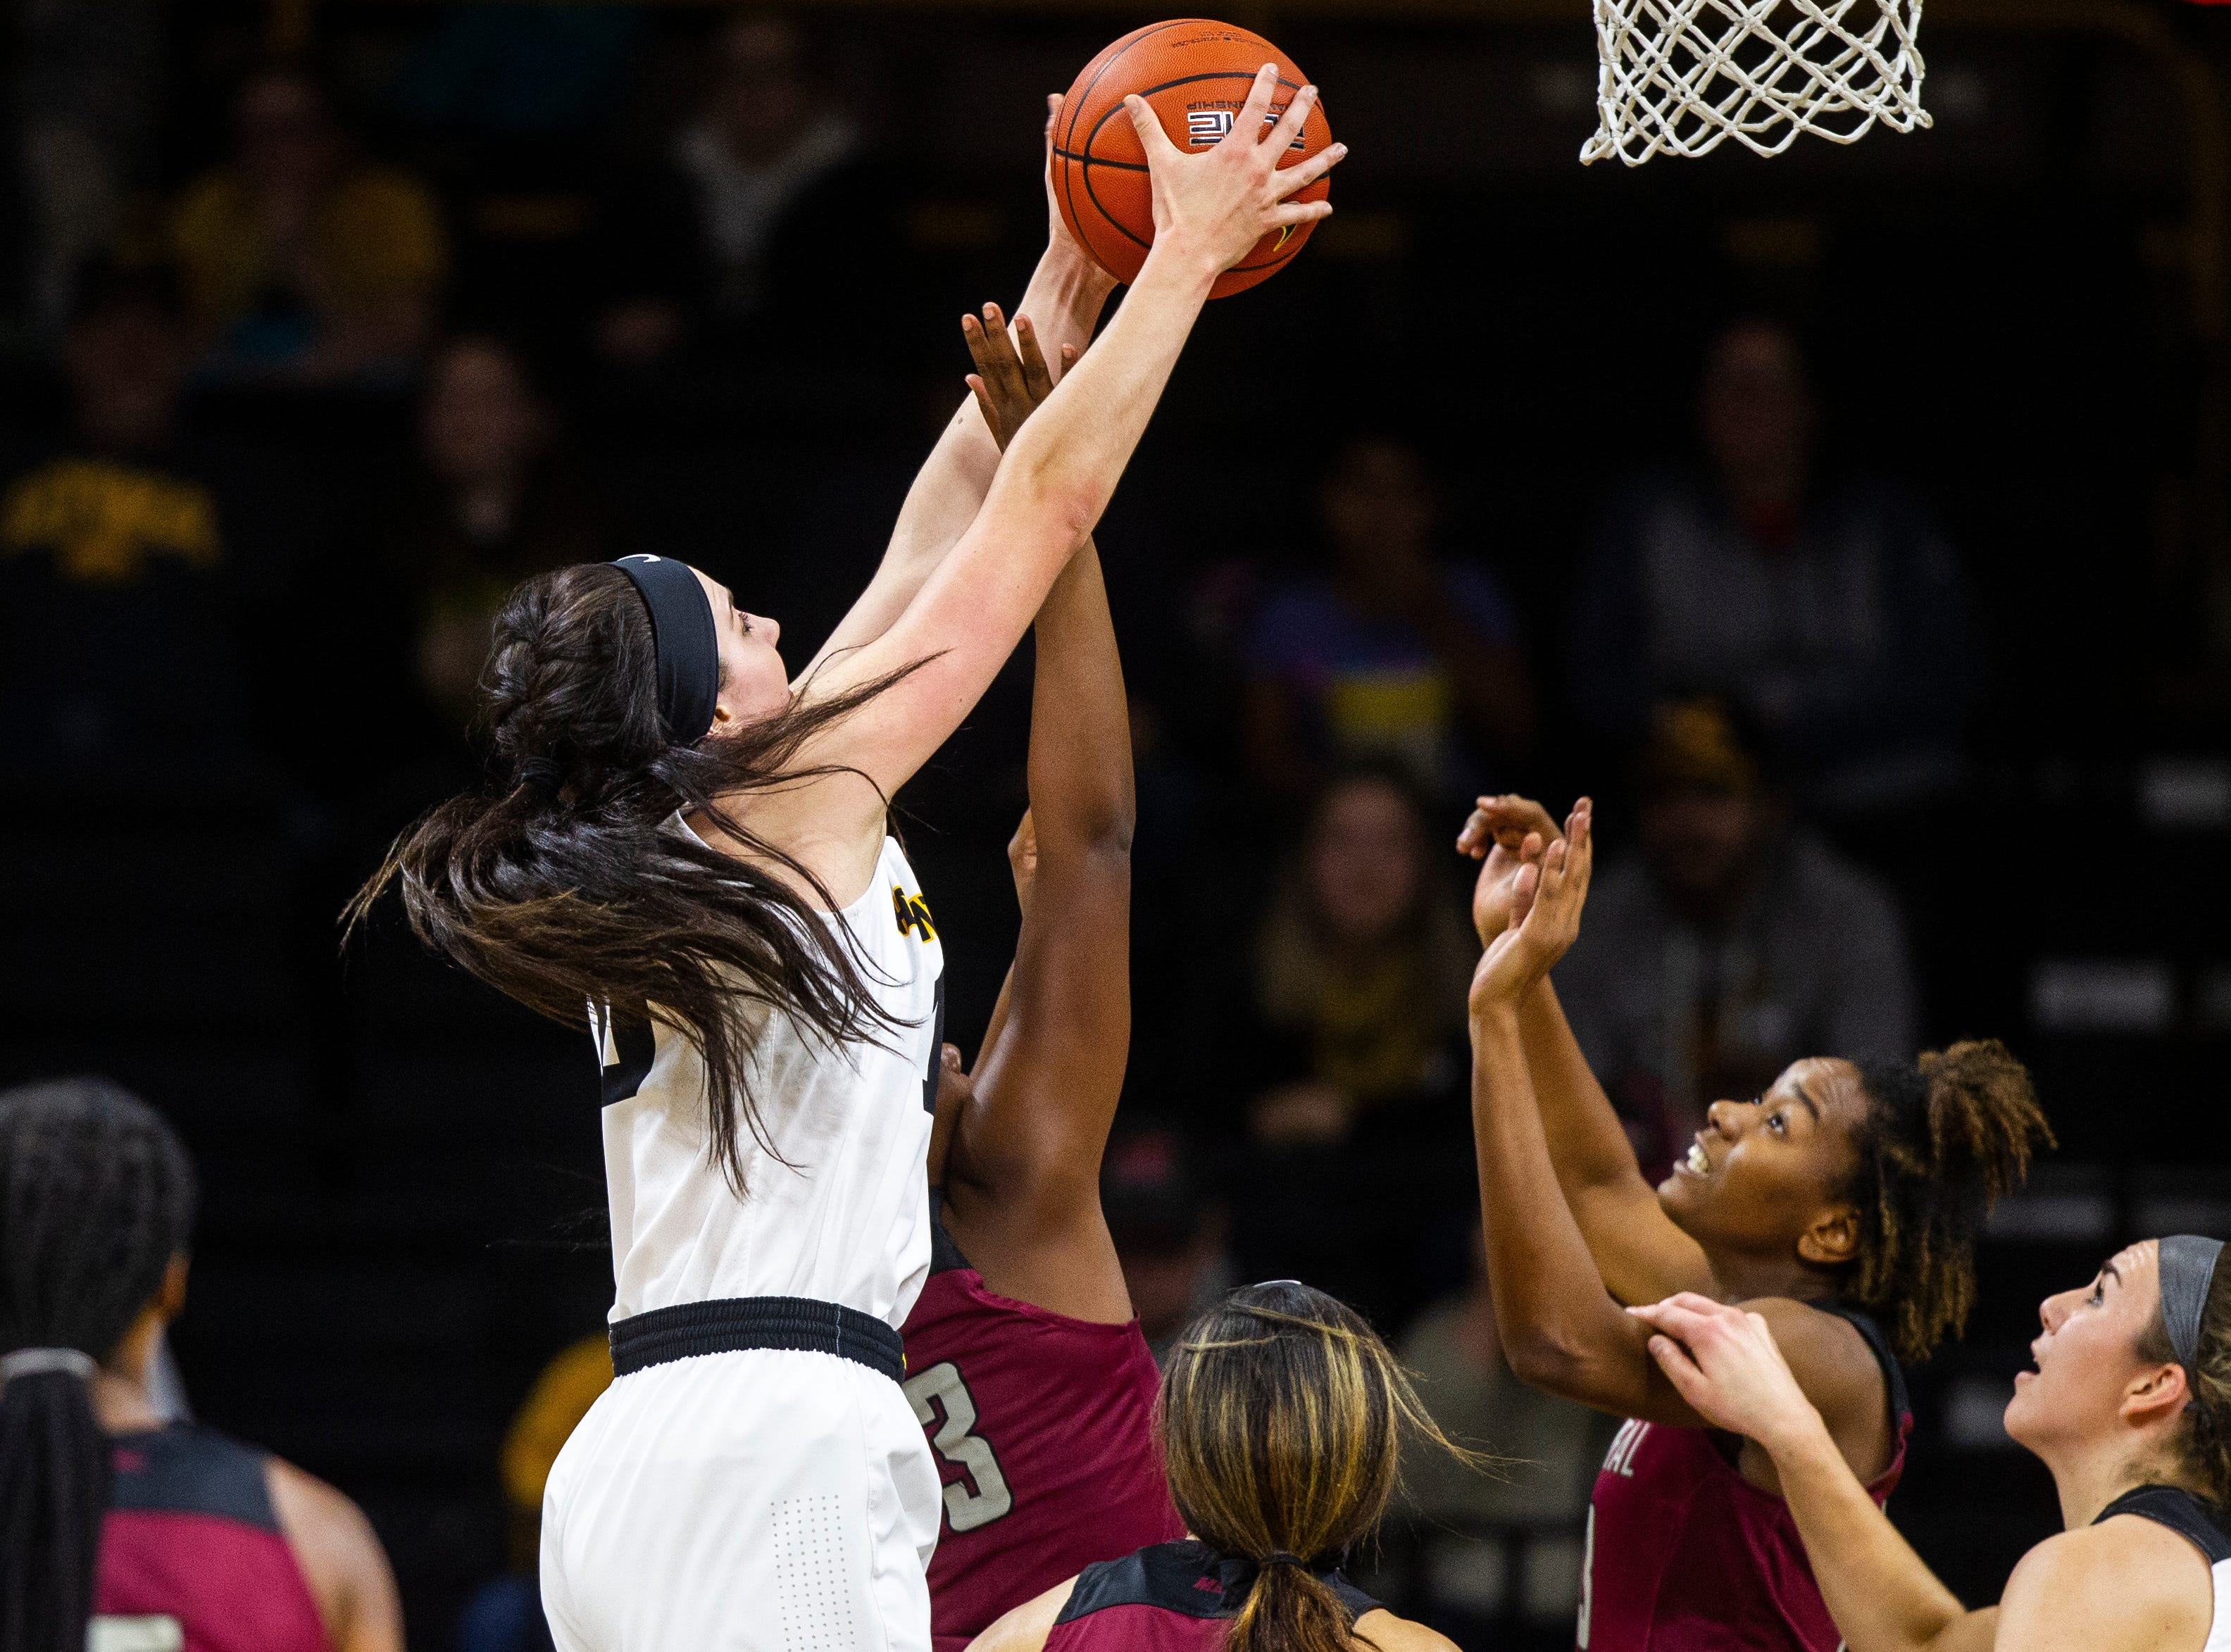 Iowa forward Megan Gustafson (10) grabs a defensive rebound during an NCAA women's basketball game on Saturday, Nov. 17, 2018, at Carver-Hawkeye Arena in Iowa City.